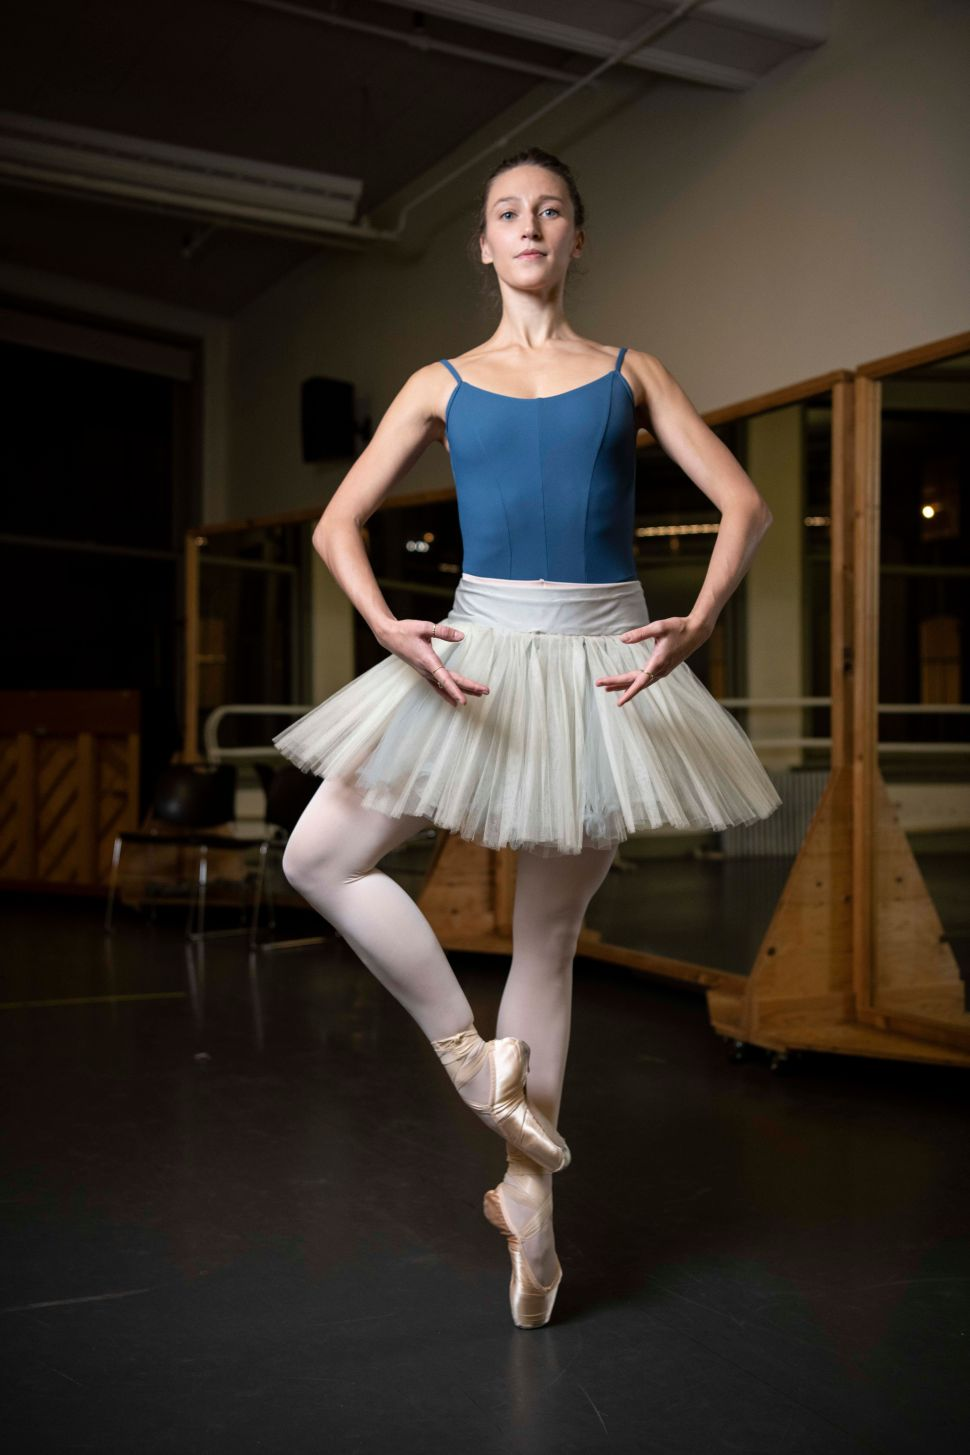 """Teuscher poses in her&nbsp;<a href=""""https://ketodancewear.com/womens/"""" target=""""_blank"""" rel=""""noopener noreferrer"""">Keto</a> leotard, <a href=""""https://www.capezio.com/women/tights"""" target=""""_blank"""" rel=""""noopener noreferrer"""">Capezio pink tights</a>, <a href=""""http://us.blochworld.com/product/S0104L"""" target=""""_blank"""" rel=""""noopener noreferrer"""">Bloch Alpha pointe shoes</a> and a practice tutu that was handed down to her by fellow principal&nbsp;<a href=""""https://www.abt.org/people/gillian-murphy/"""" target=""""_blank"""" rel=""""noopener noreferrer"""">Gillian Murphy</a>."""